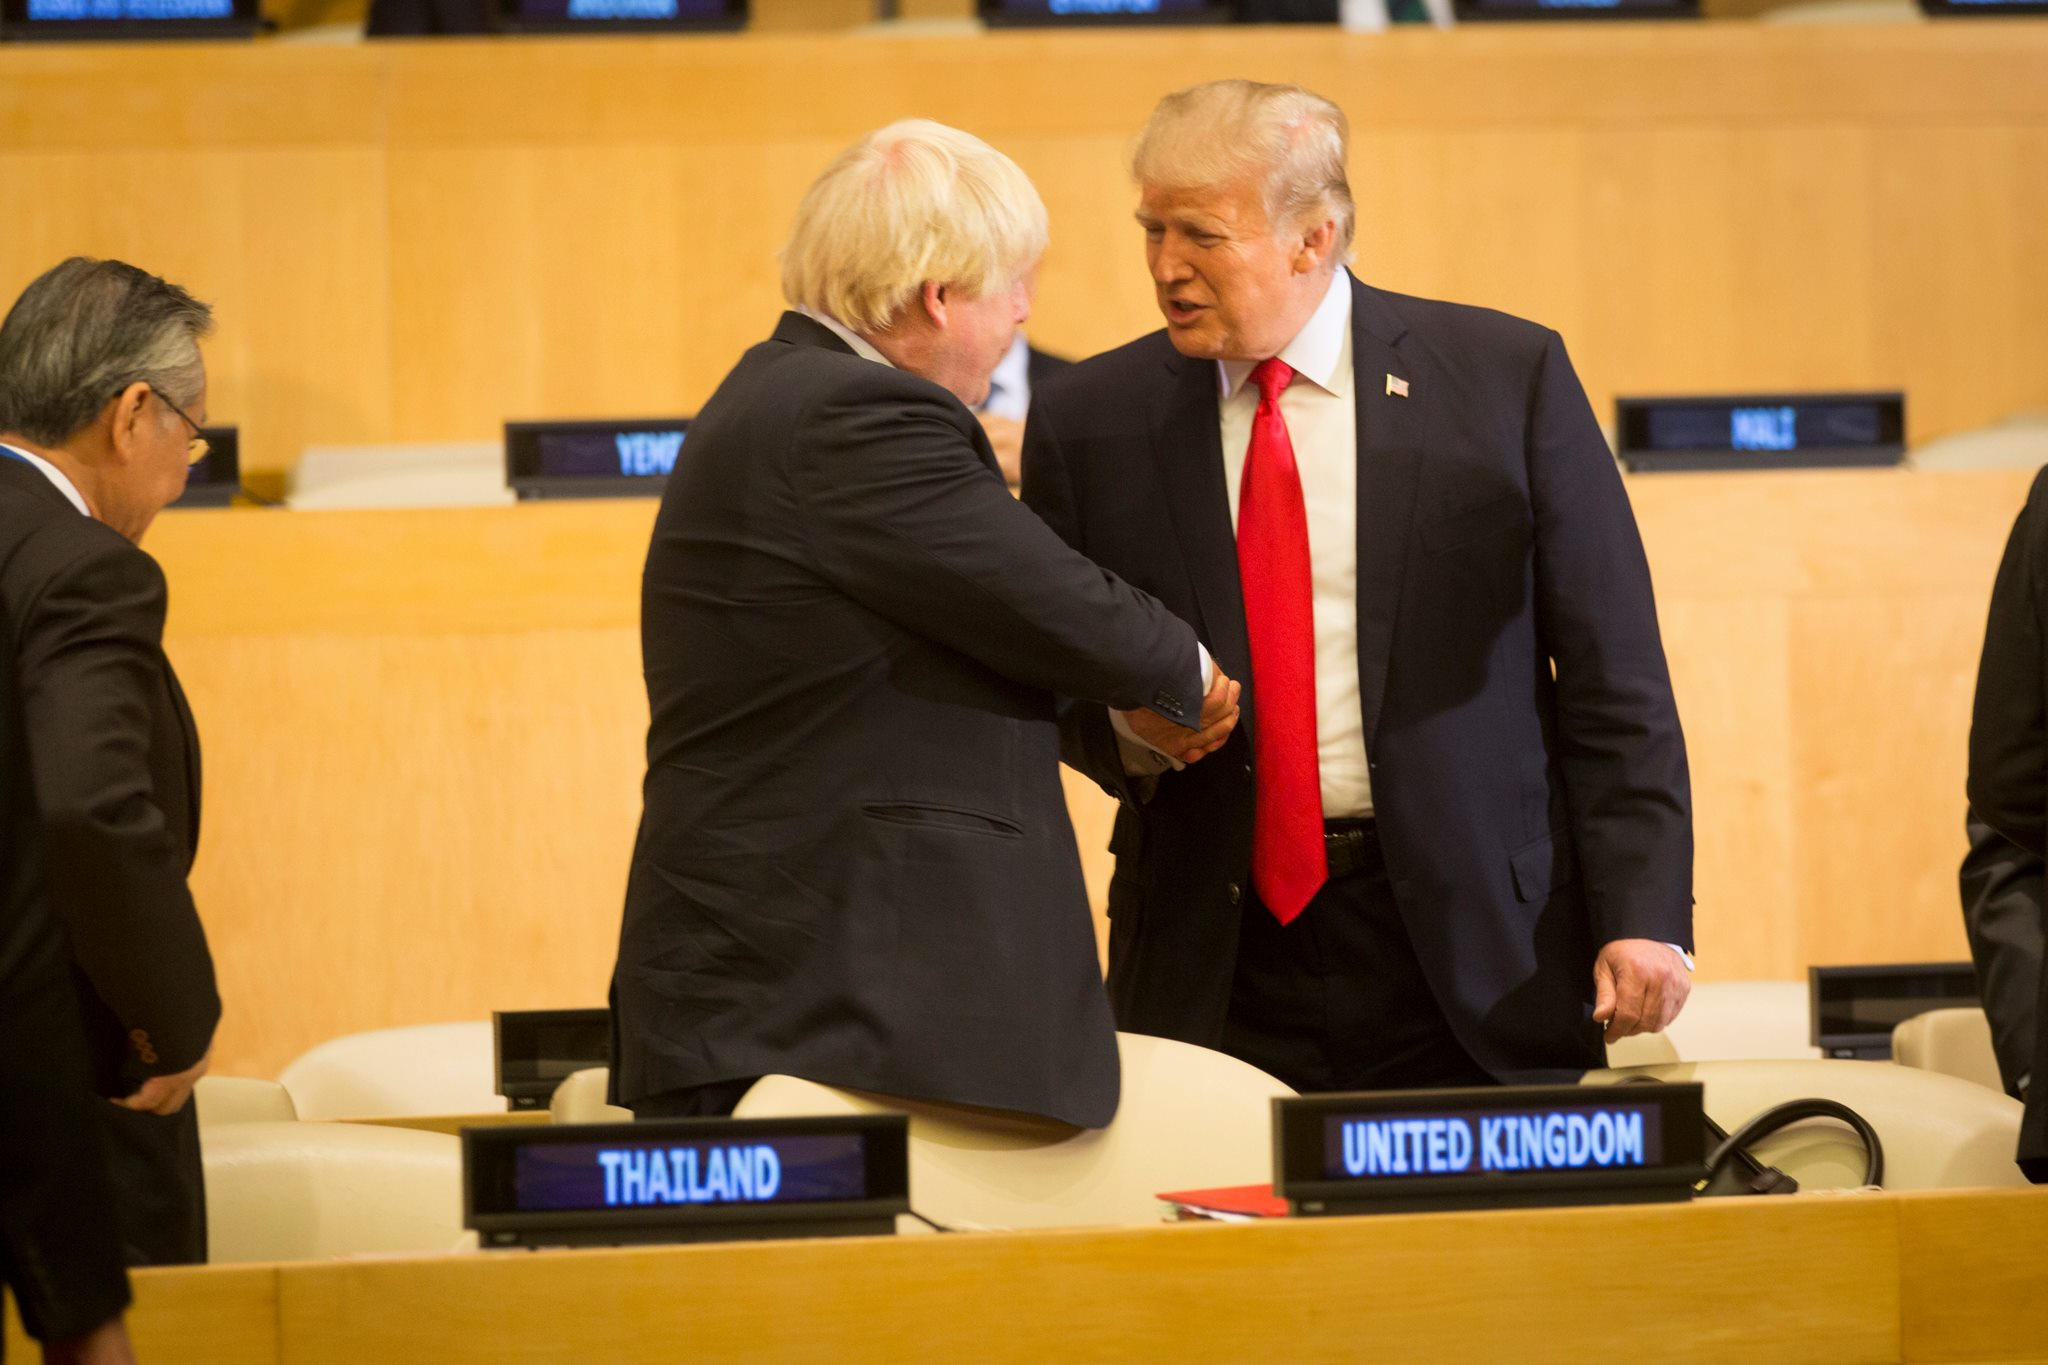 Blondie ambition: Then British Foreign Secretary Boris Johnson greets President Donald J. Trump at the United Nations General Assembly, Oct. 2 2017. White House photograph by D. Myles Cullen.